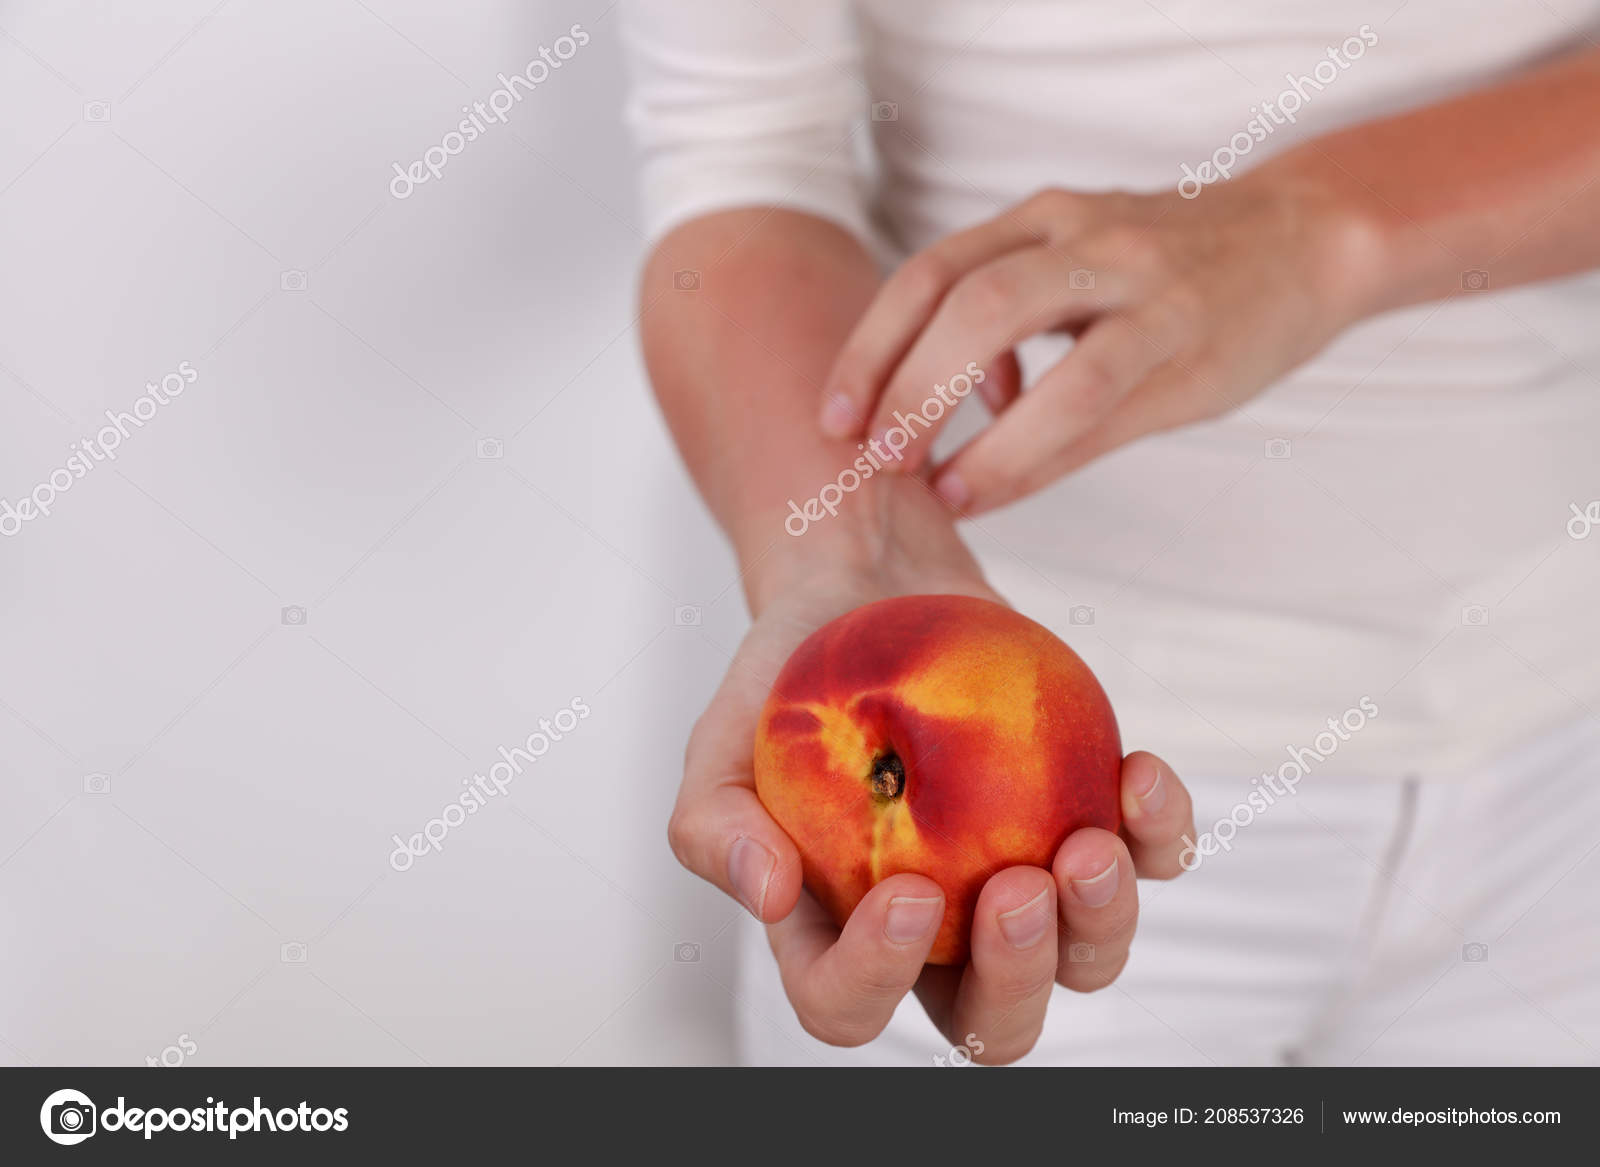 Woman Suffering Fruit Allergy Holding Peach Oas Food Allergy